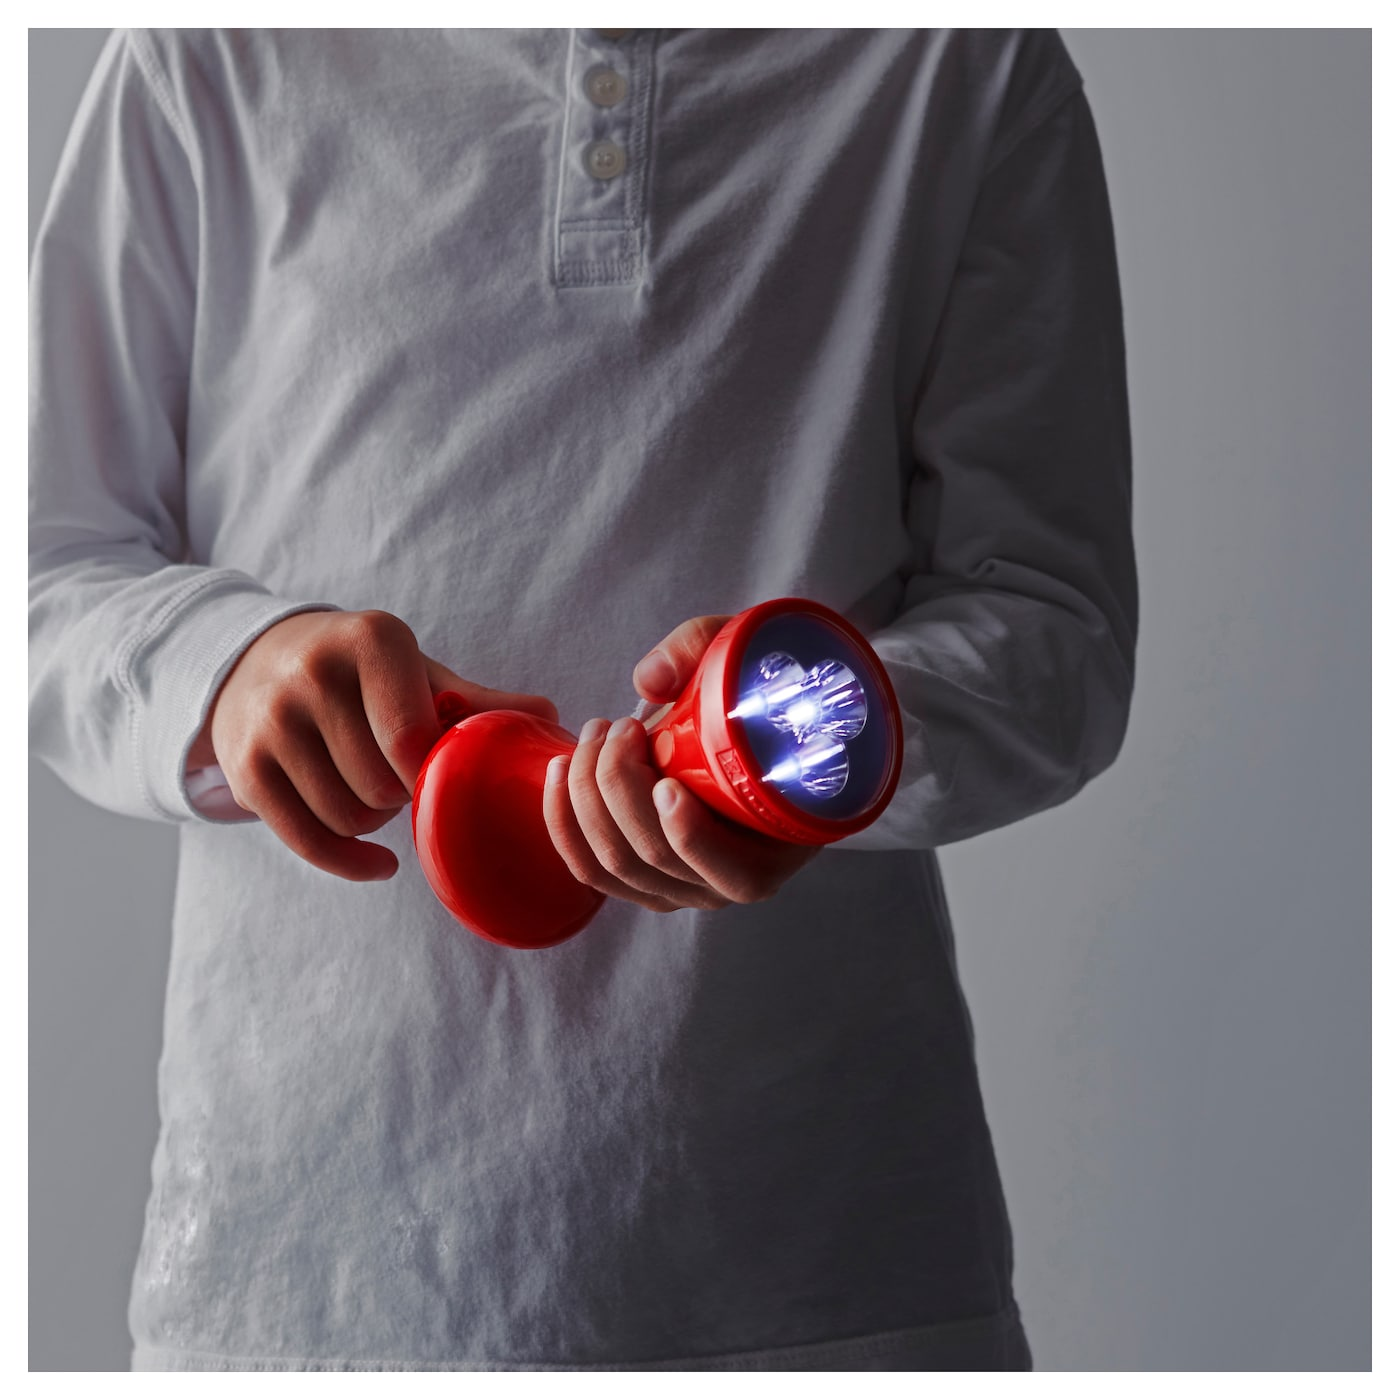 IKEA LJUSA LED torch, hand-driven